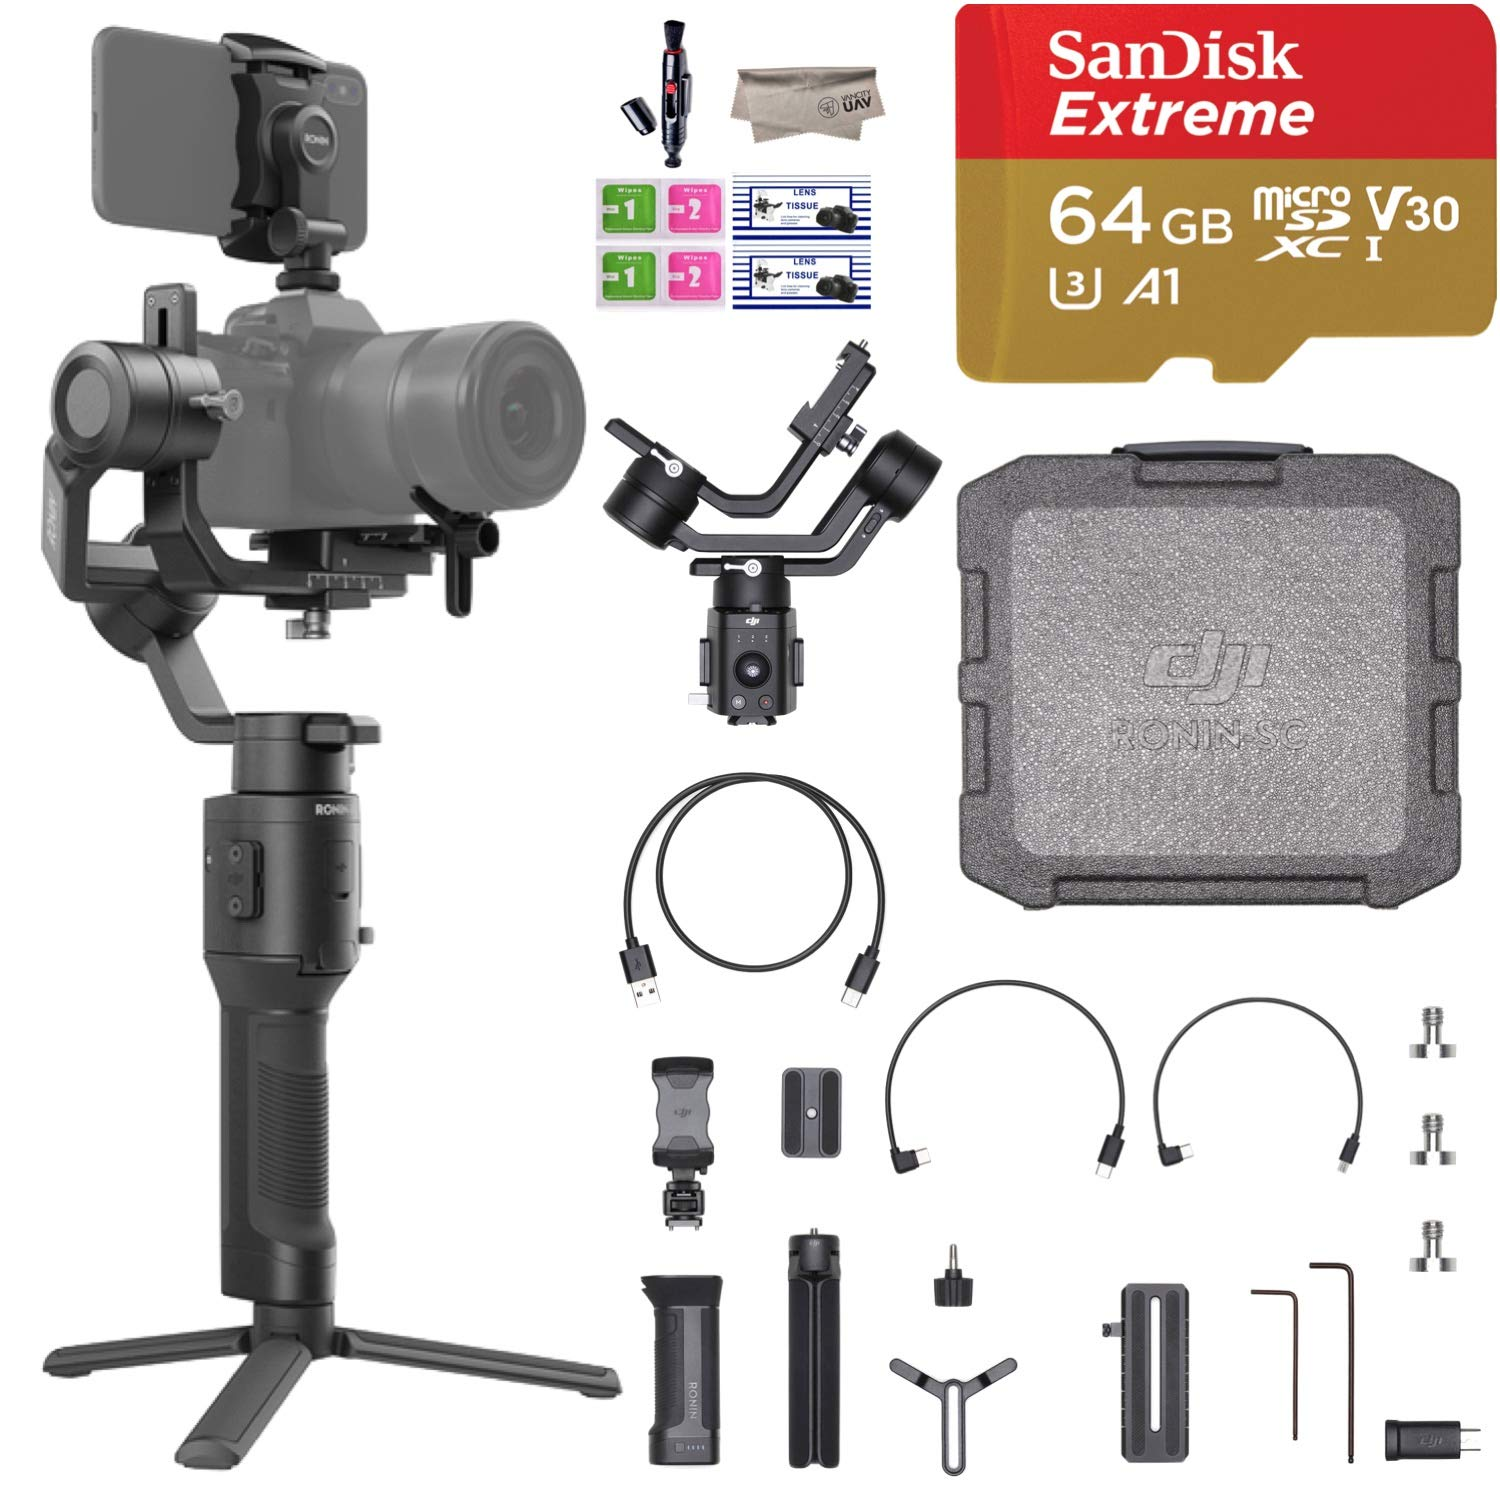 2019 DJI Ronin-SC 3-Axis Gimbal Stabilizer for Mirrorless Cameras, Comes 64GB Micro SD, Tripod, Phone Holder, Carrying Case and Cleaning Kit, Up to 4.4lb Payload, 1 Year Limited Warranty by DJI